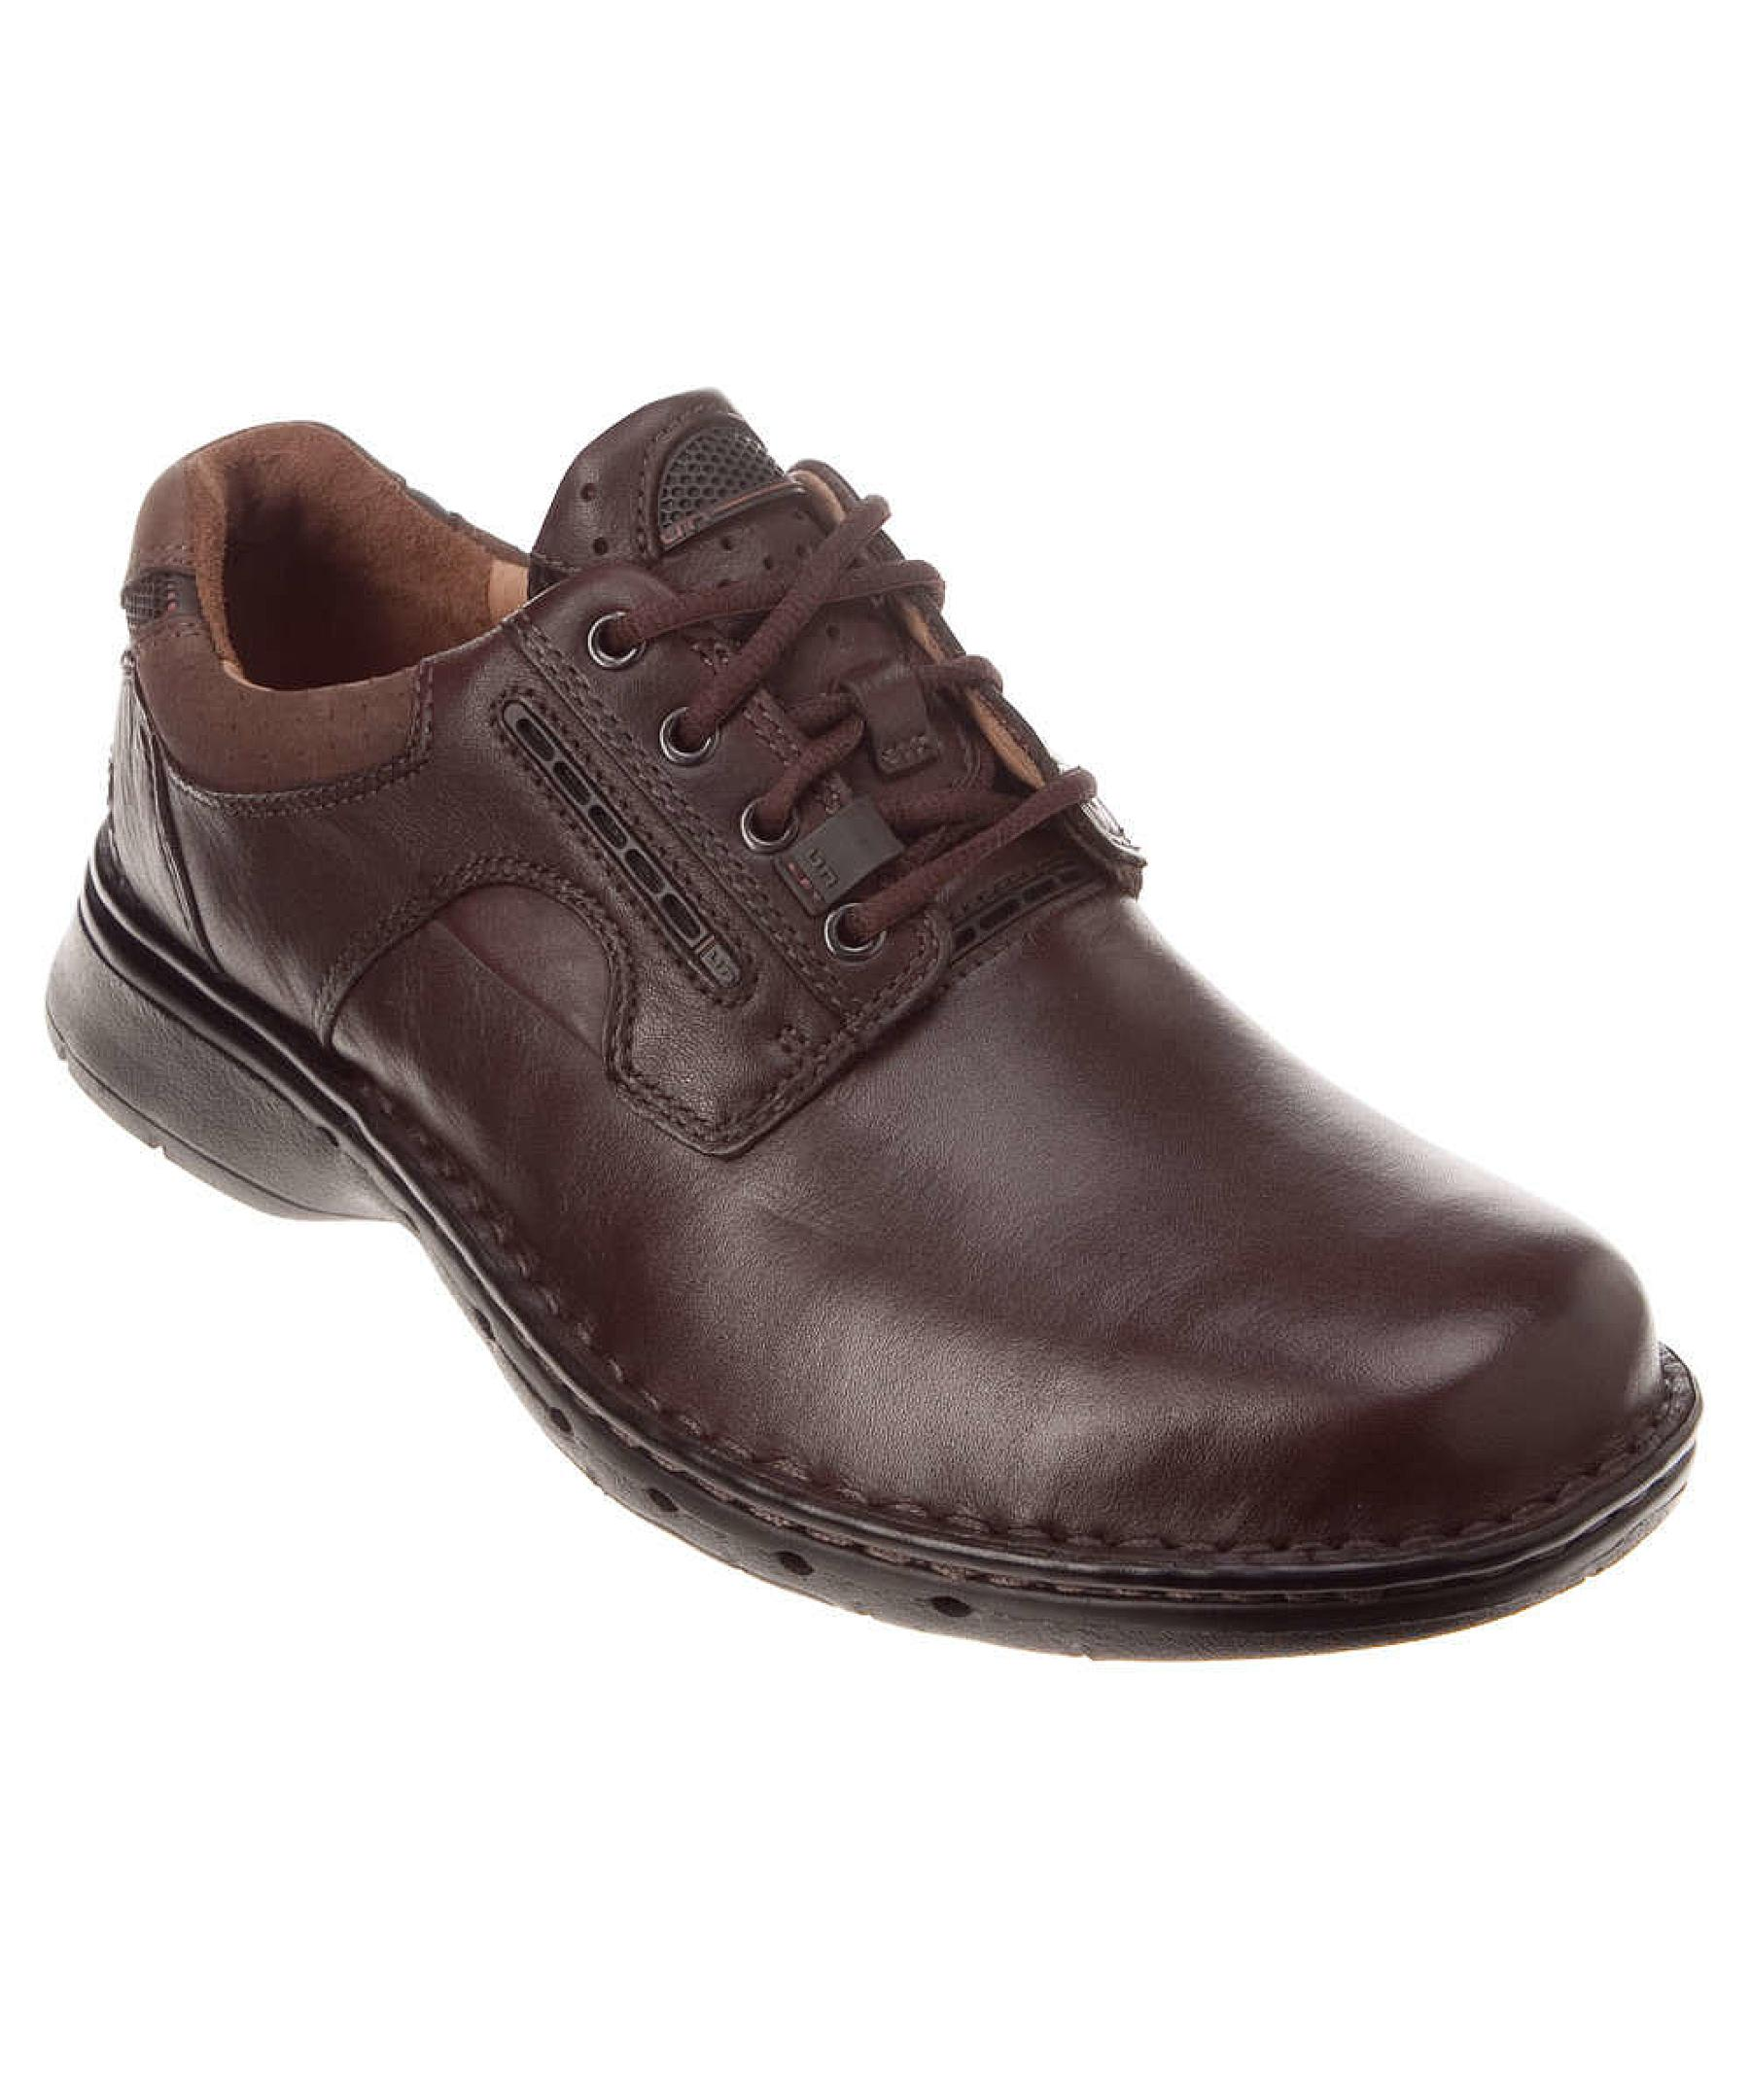 Clarks Air Wear Shoes